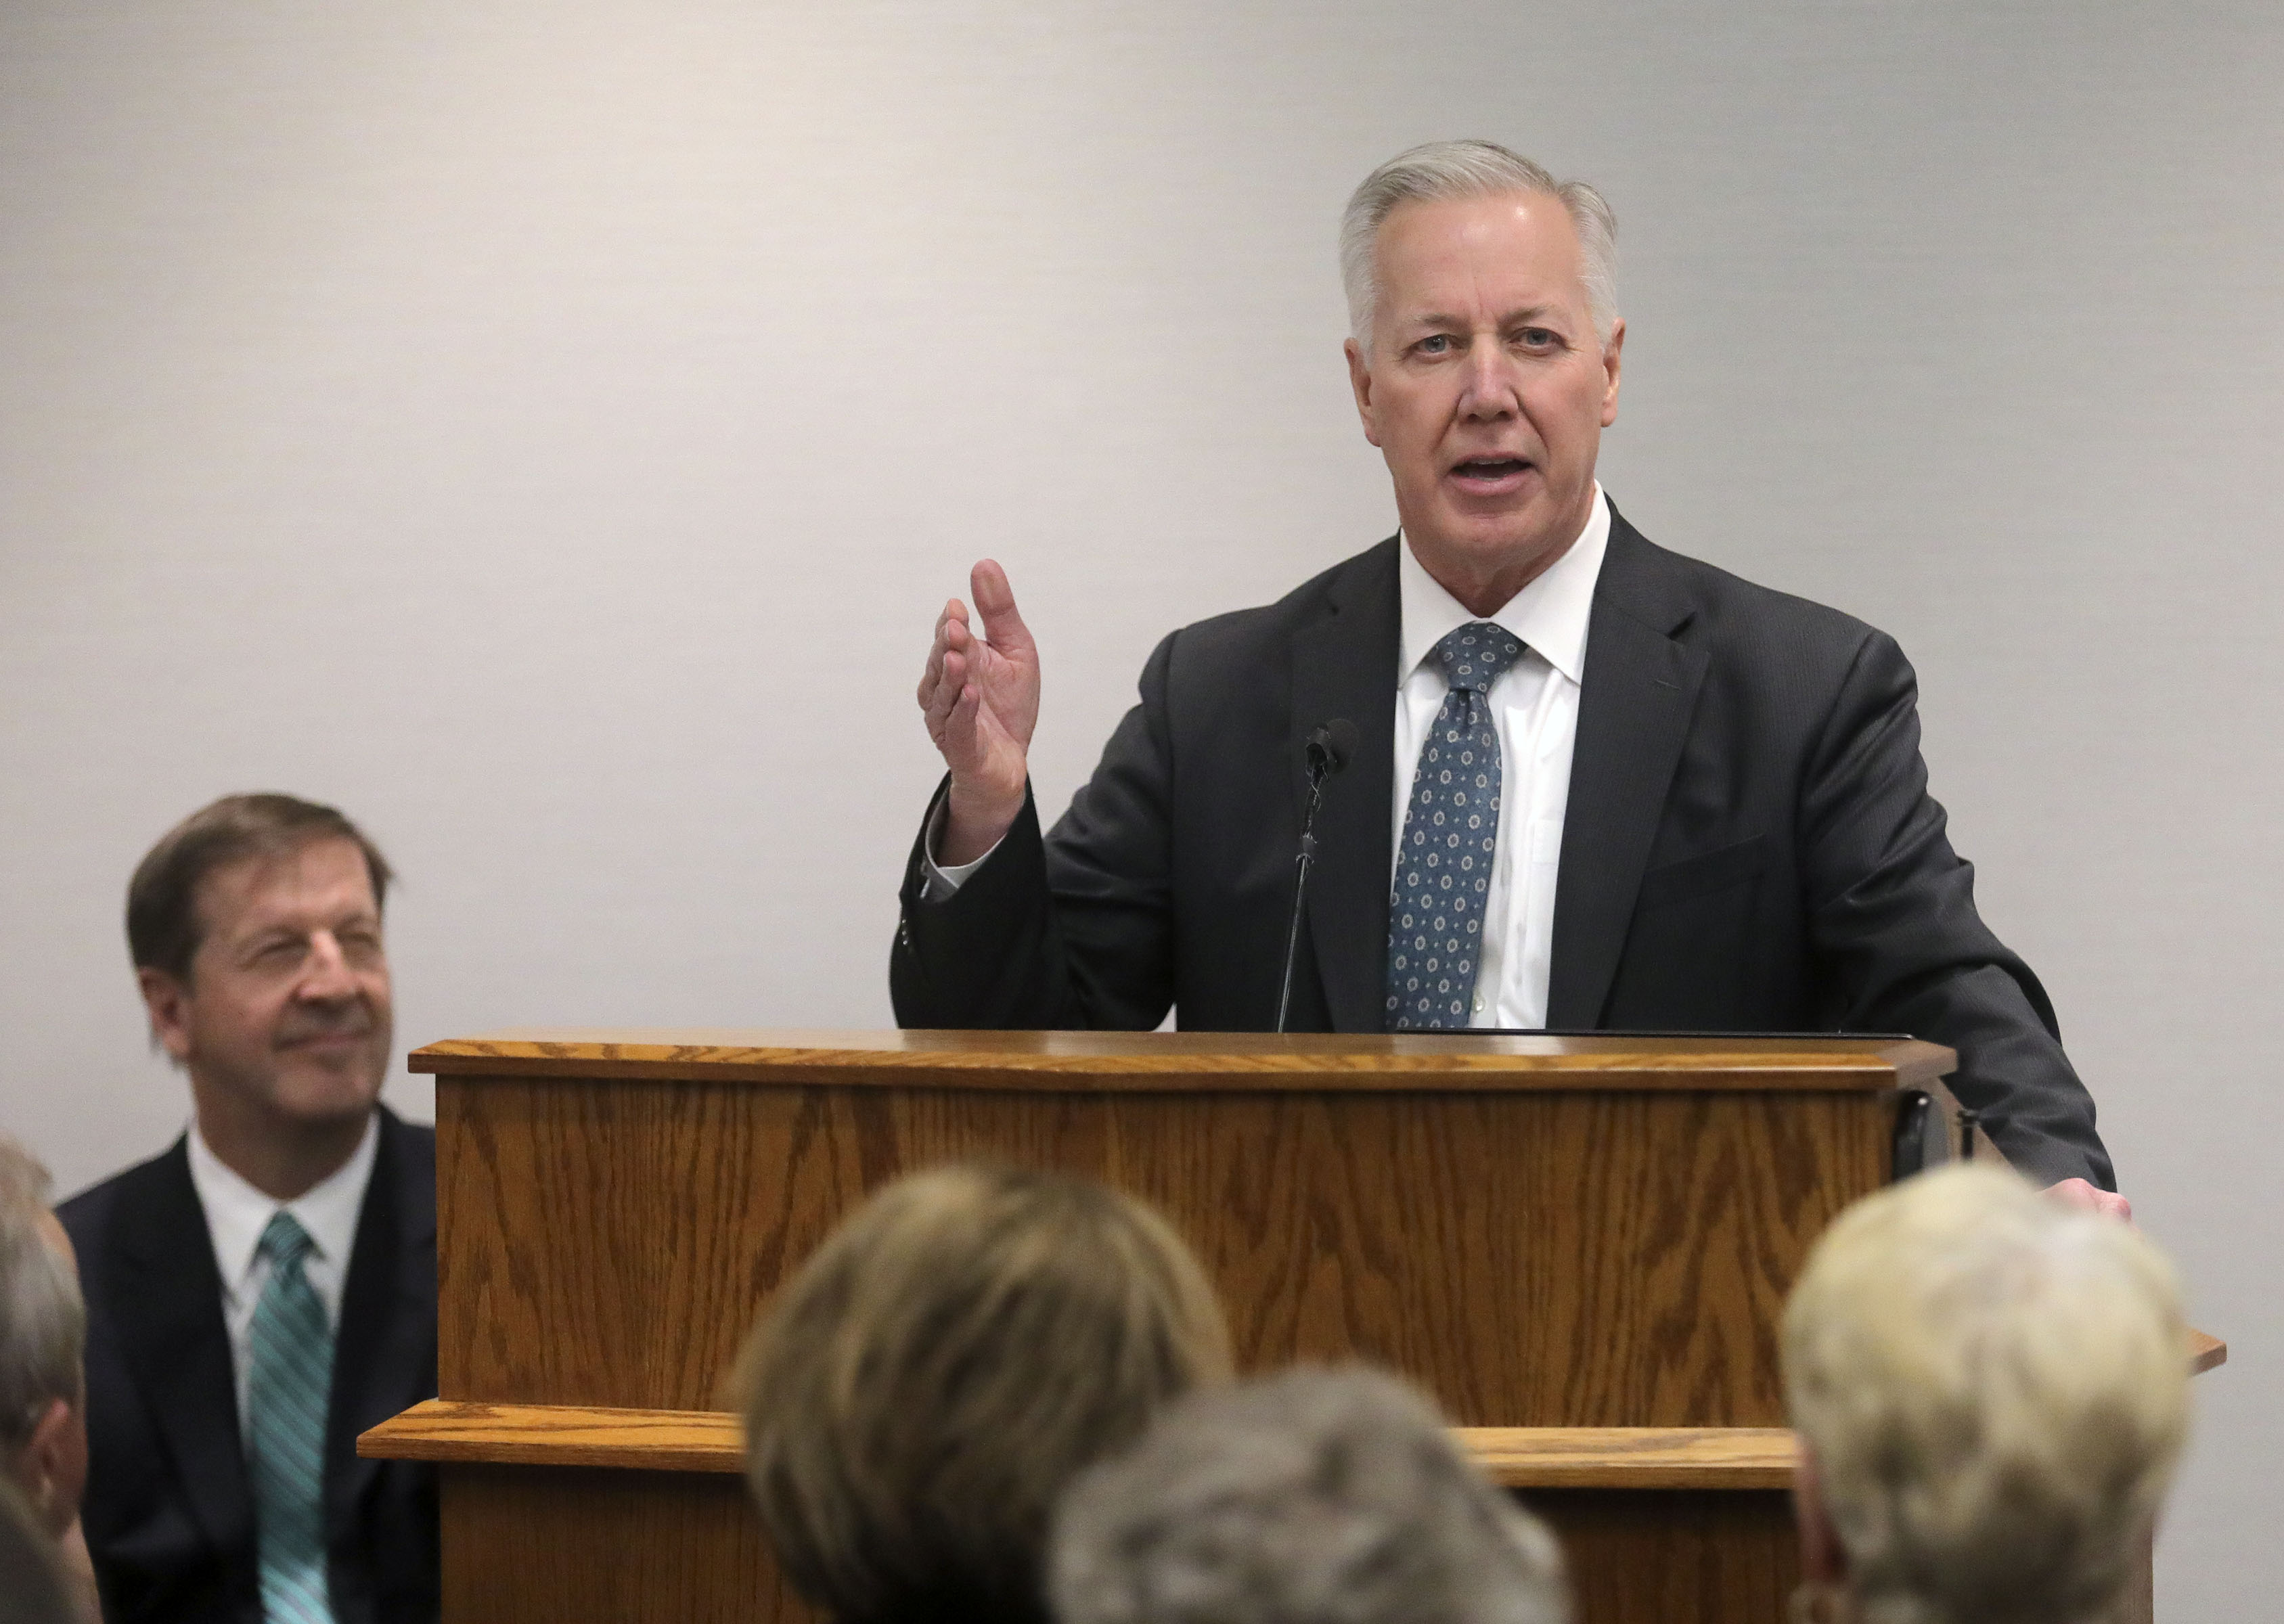 Elder Kevin S. Hamilton, executive director of the Family History Department and General Authority Seventy of The Church of Jesus Christ of Latter-day Saints, speaks during the FamilySearch 125th anniversary celebration at the Family History Library in Salt Lake City on Wednesday, Nov. 13, 2019.